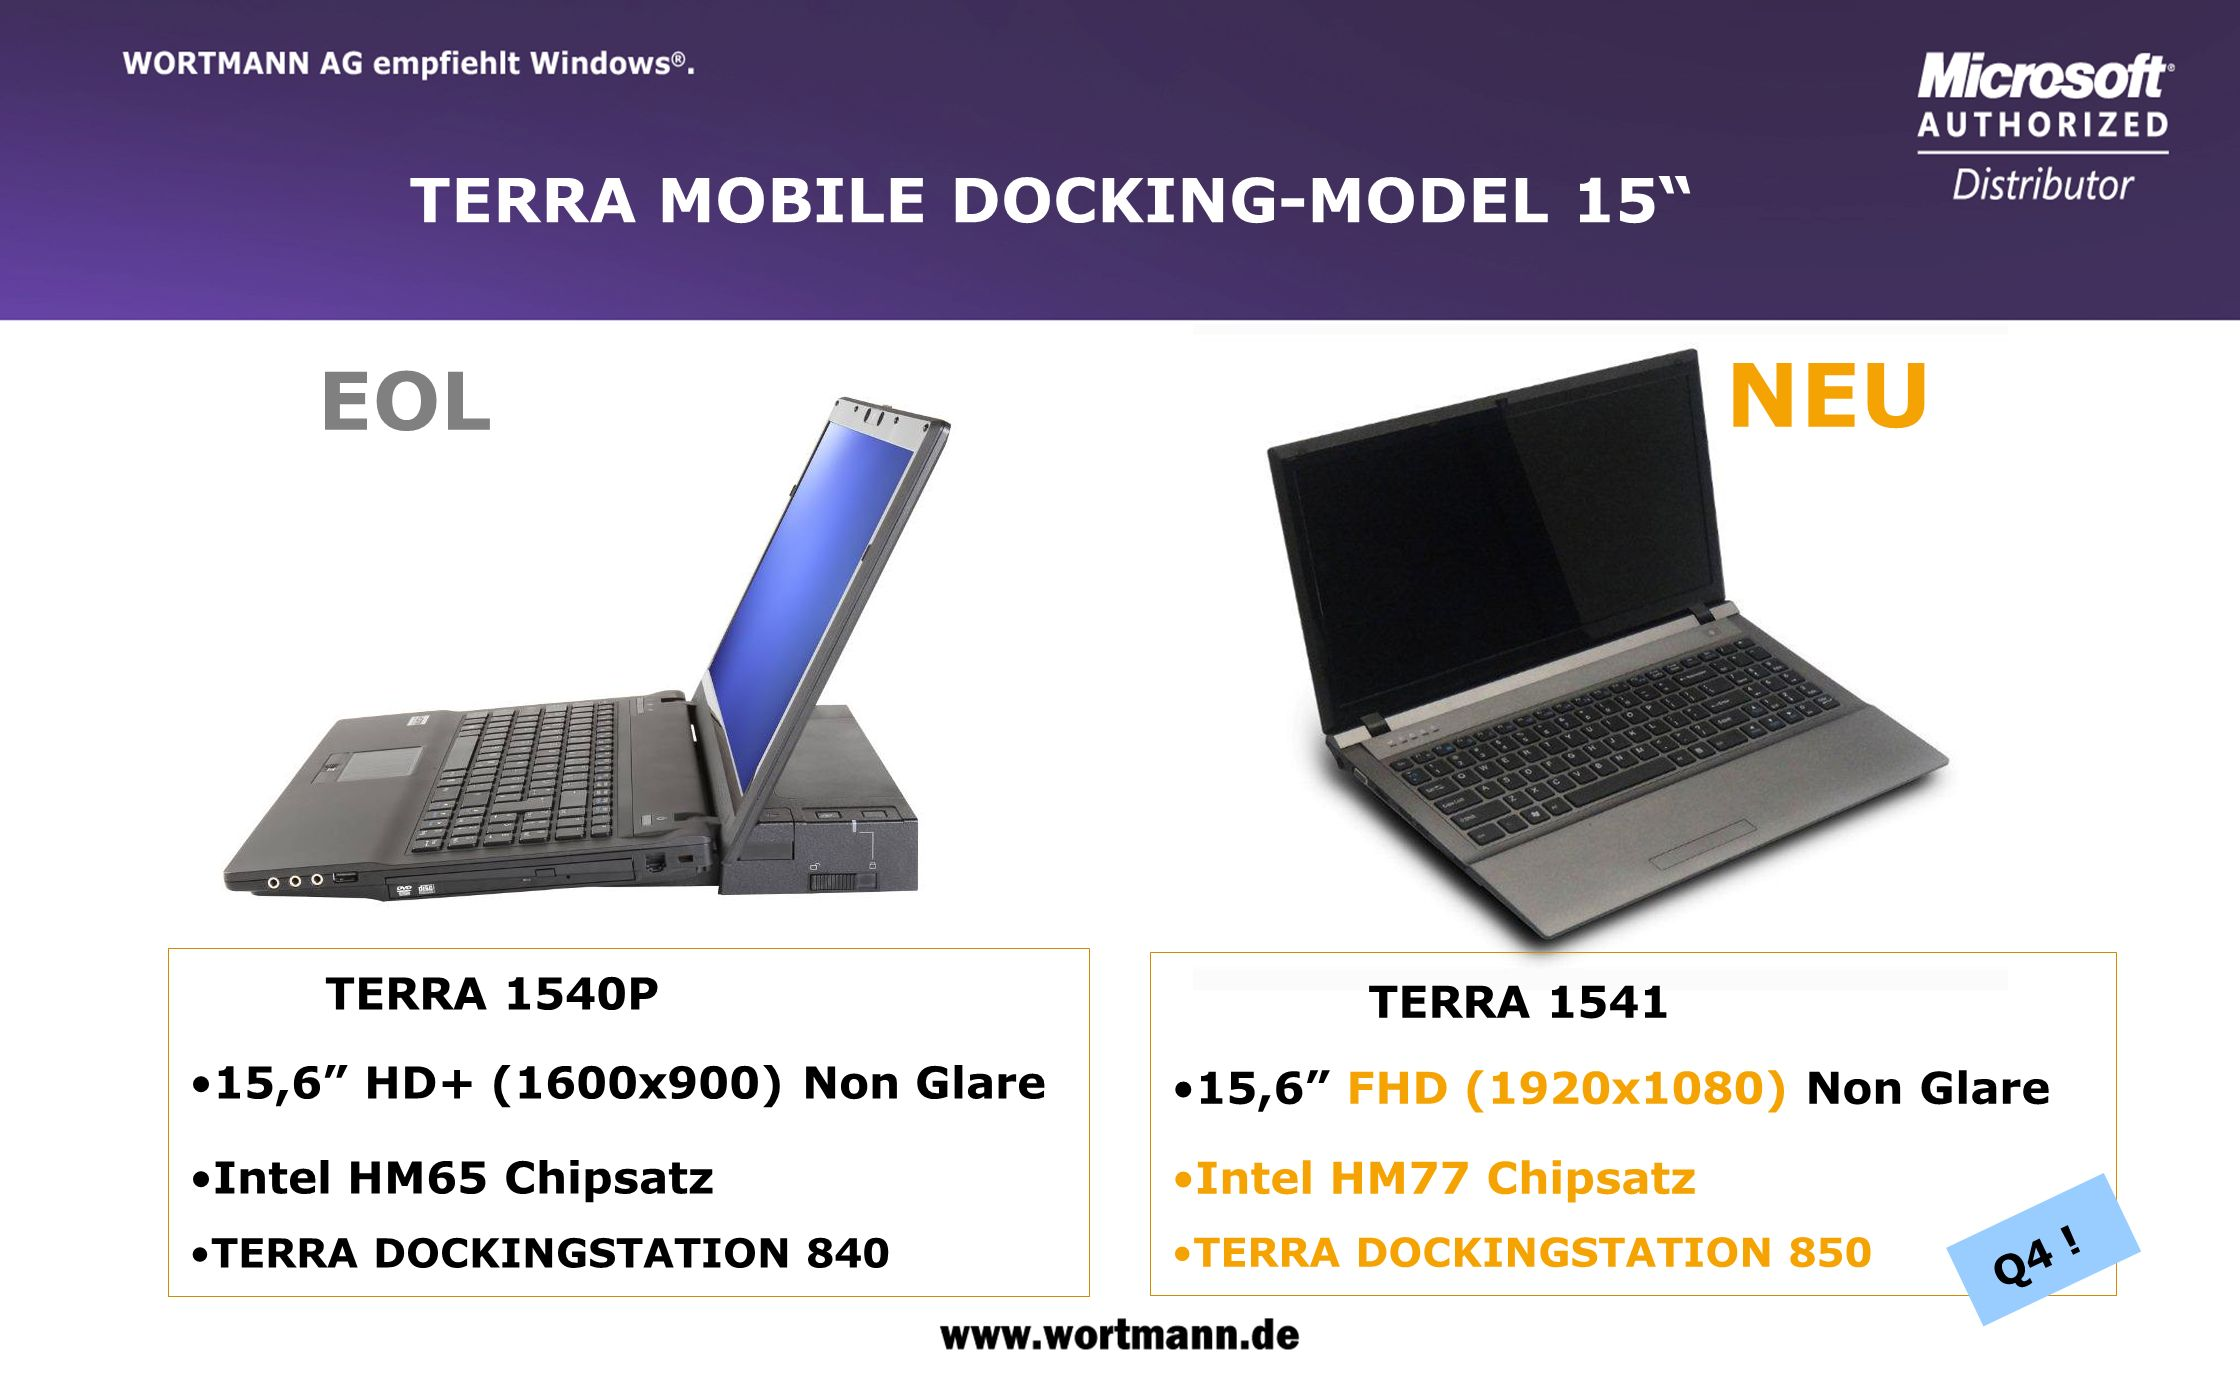 NEU EOL TERRA MOBILE DOCKING-MODEL 15 15,6 HD+ (1600x900) Non Glare